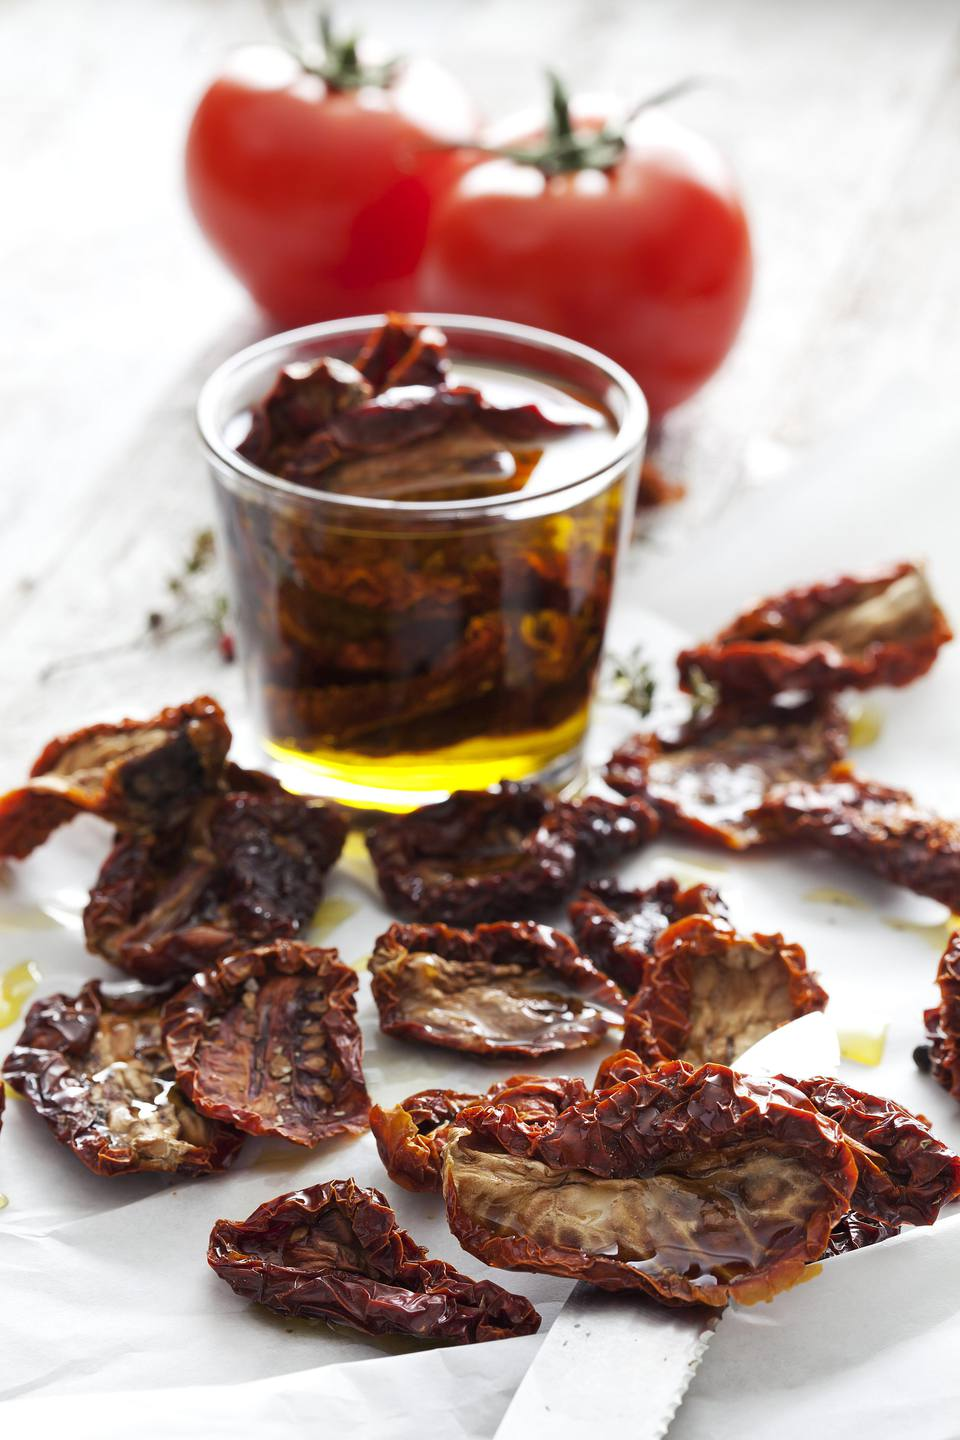 Sun-Dried Tomato Marinade